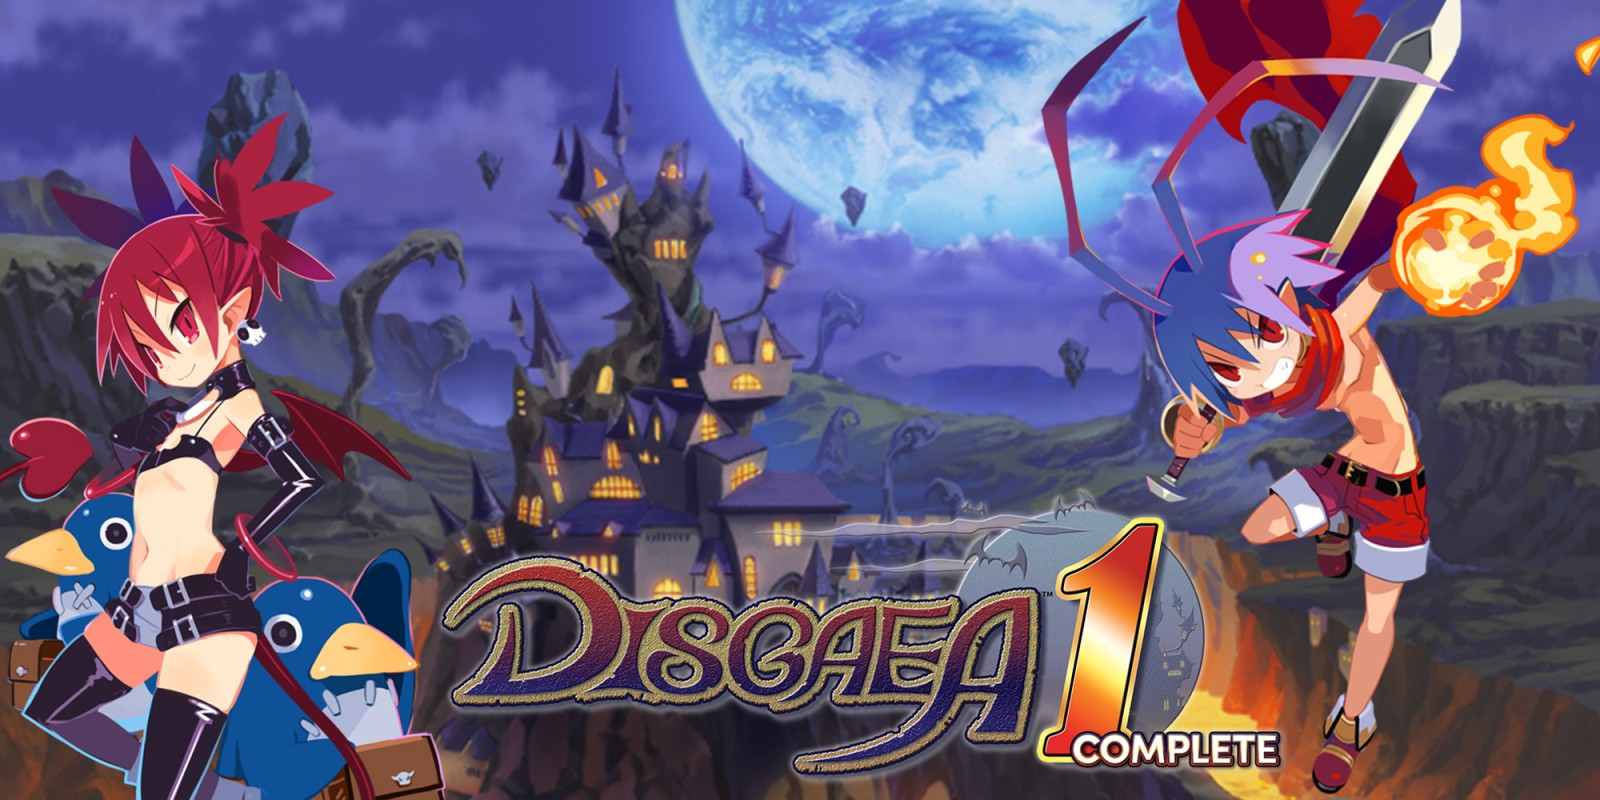 H2x1_NSwitch_Disgaea1Complete_image1600w